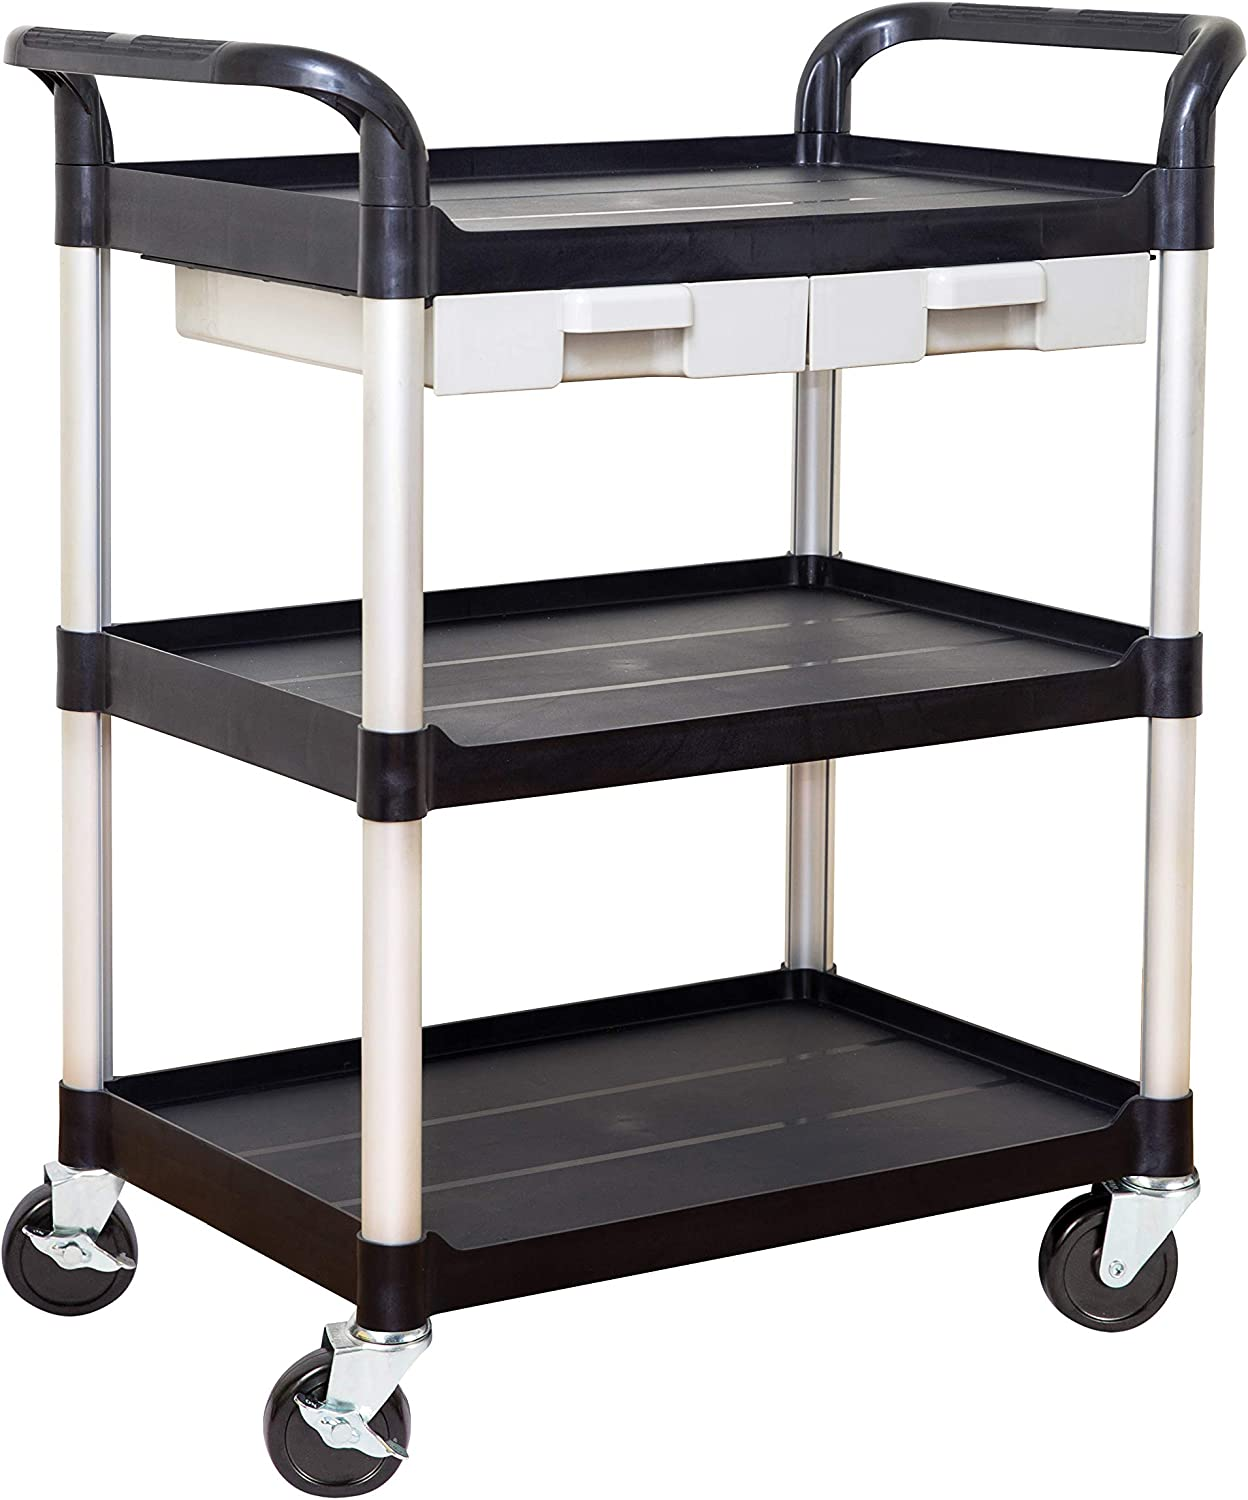 JaboEquip Commercial Utility Carts with Drawers for Lab and Hospitality Black